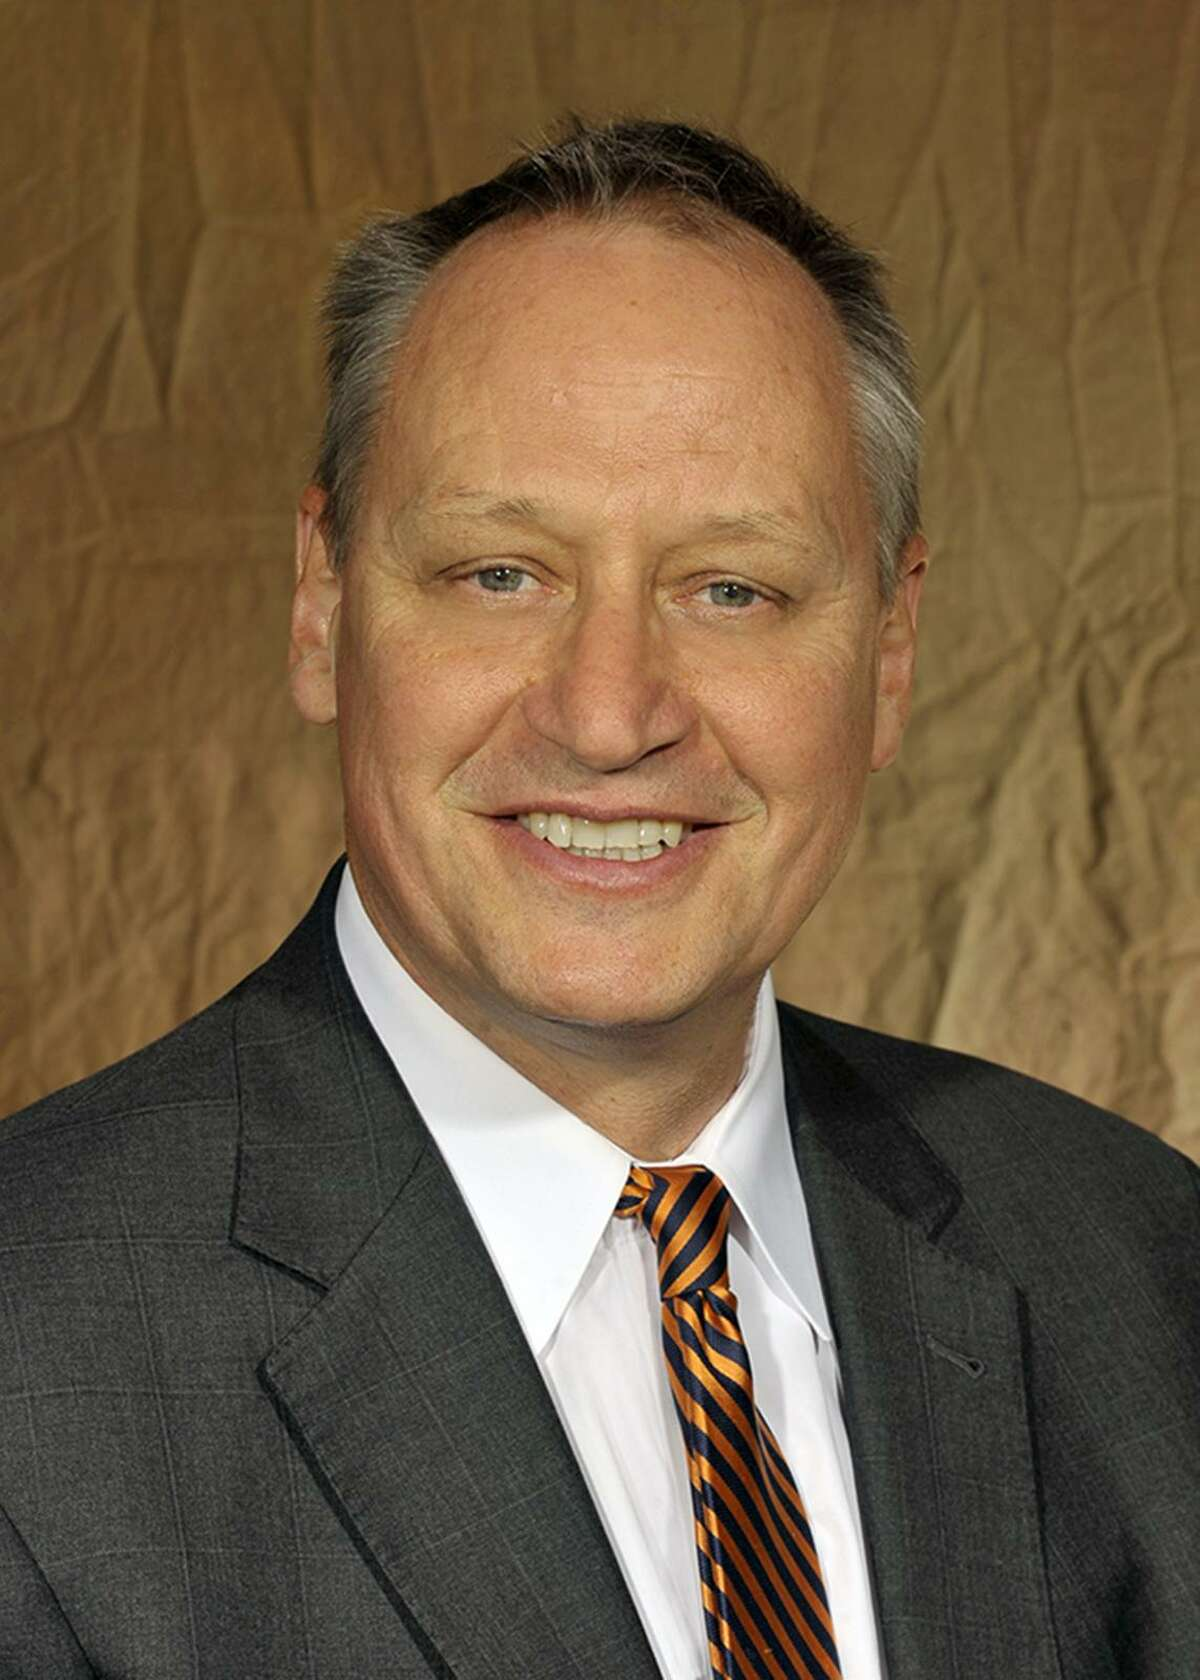 The University of Texas System Board of Regents voted to hire Taylor Eighmy, vice-chancellor for research and engagement at University of Tennesse-Knoxville, as the sole finalist for the next president of University of Texas at San Antonio.